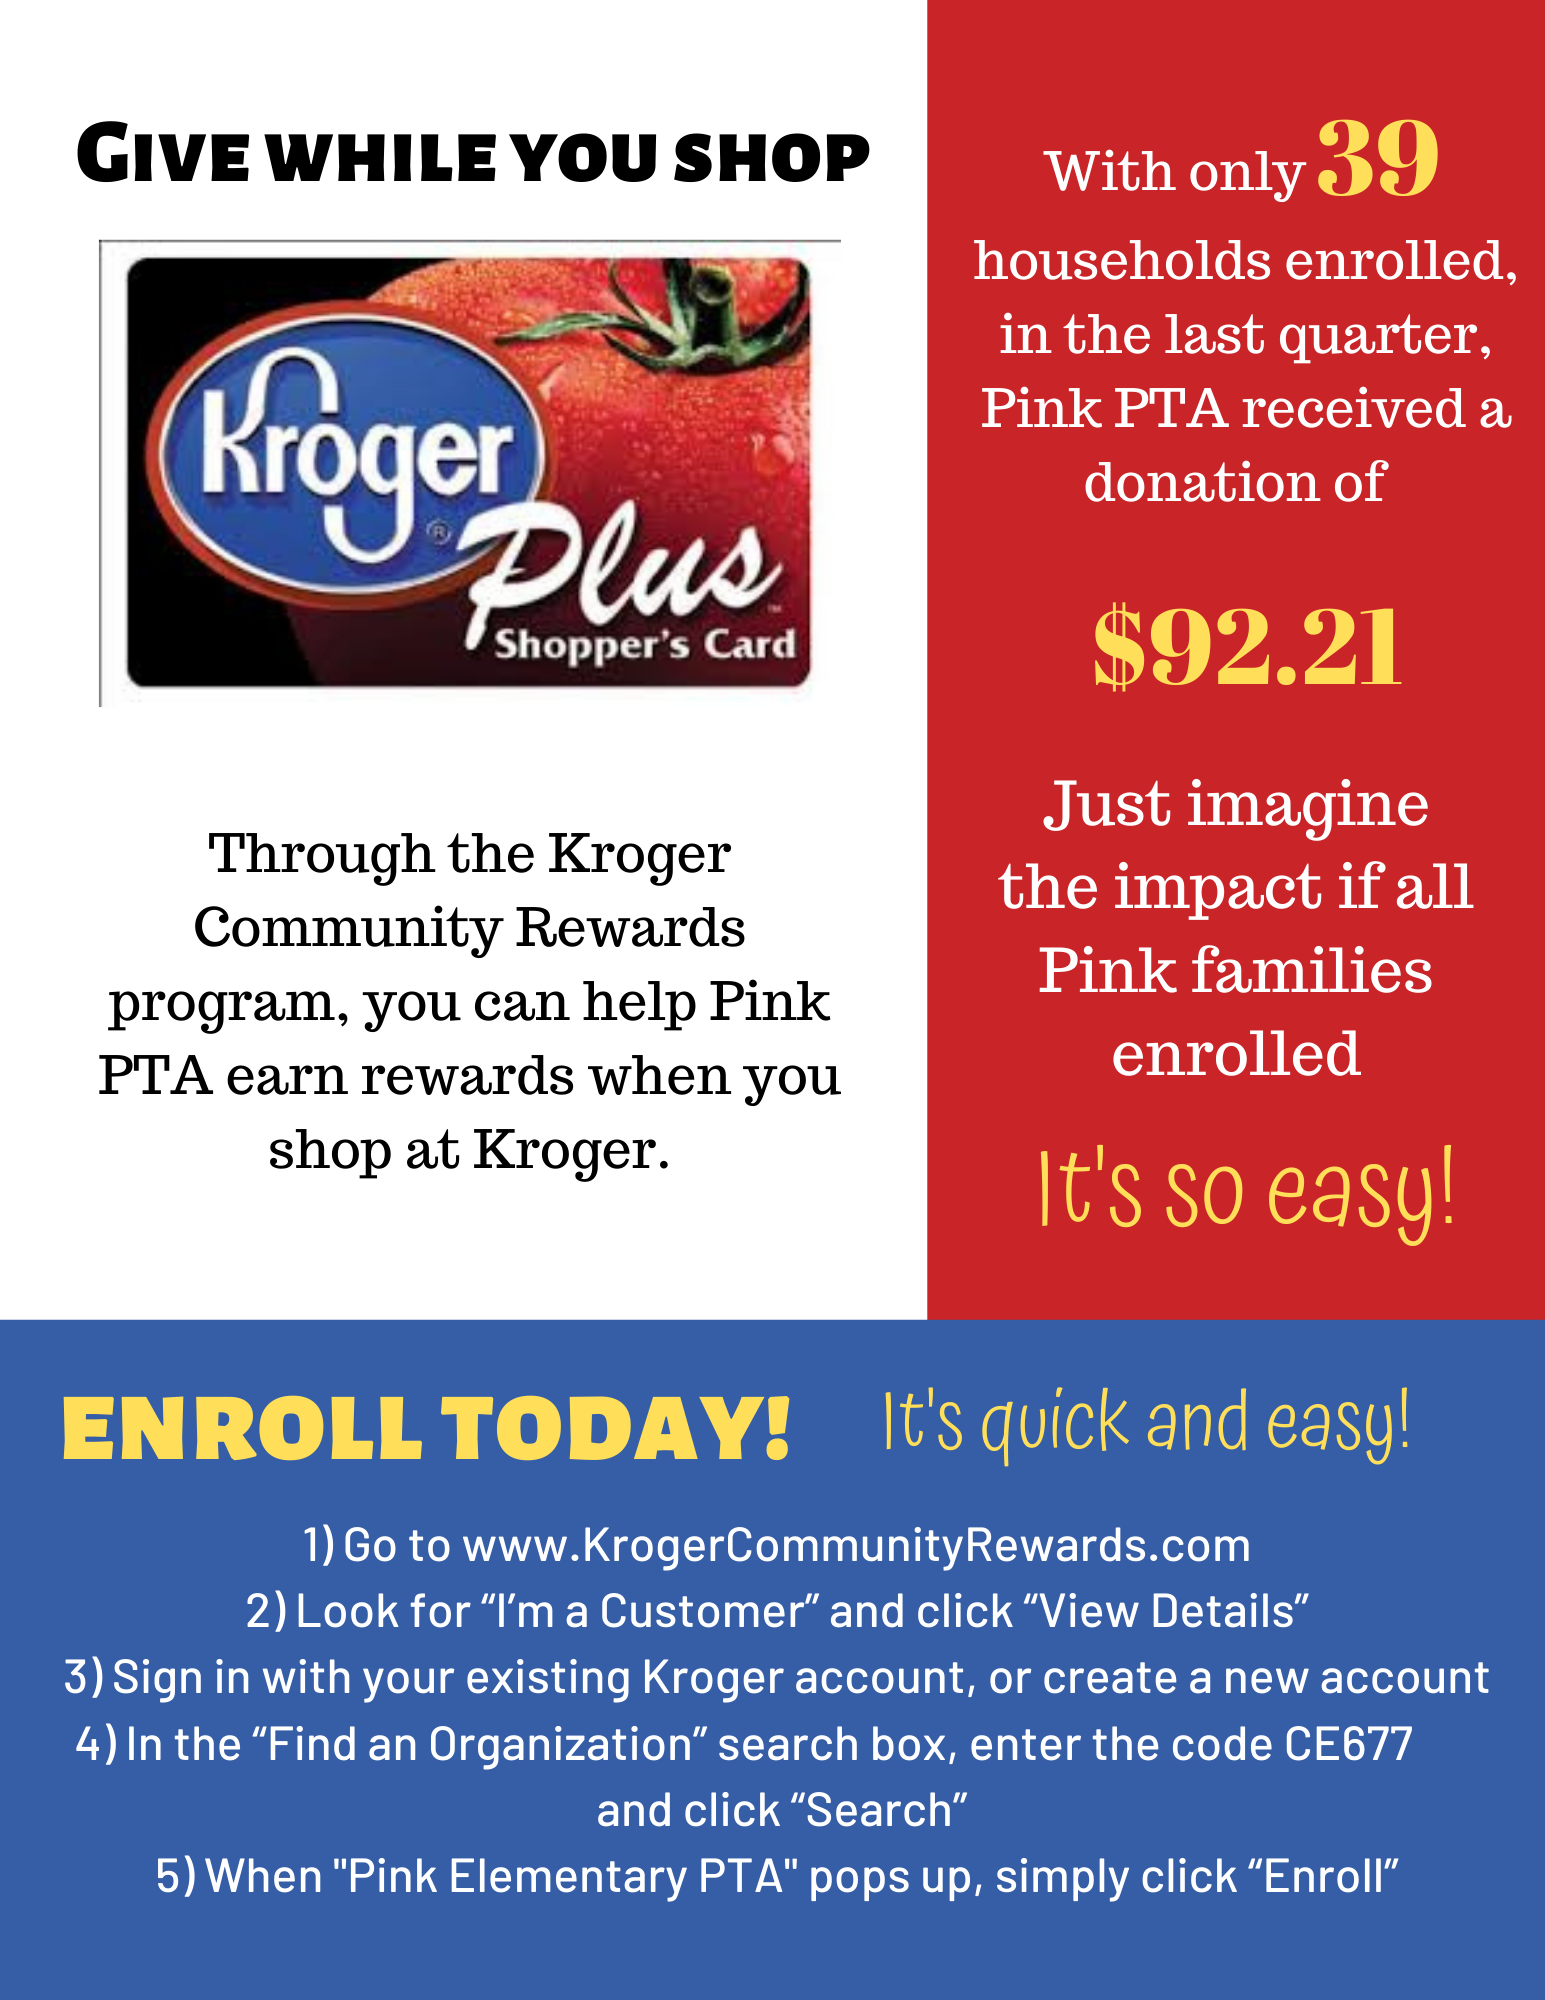 Graphic on Kroger community rewards program